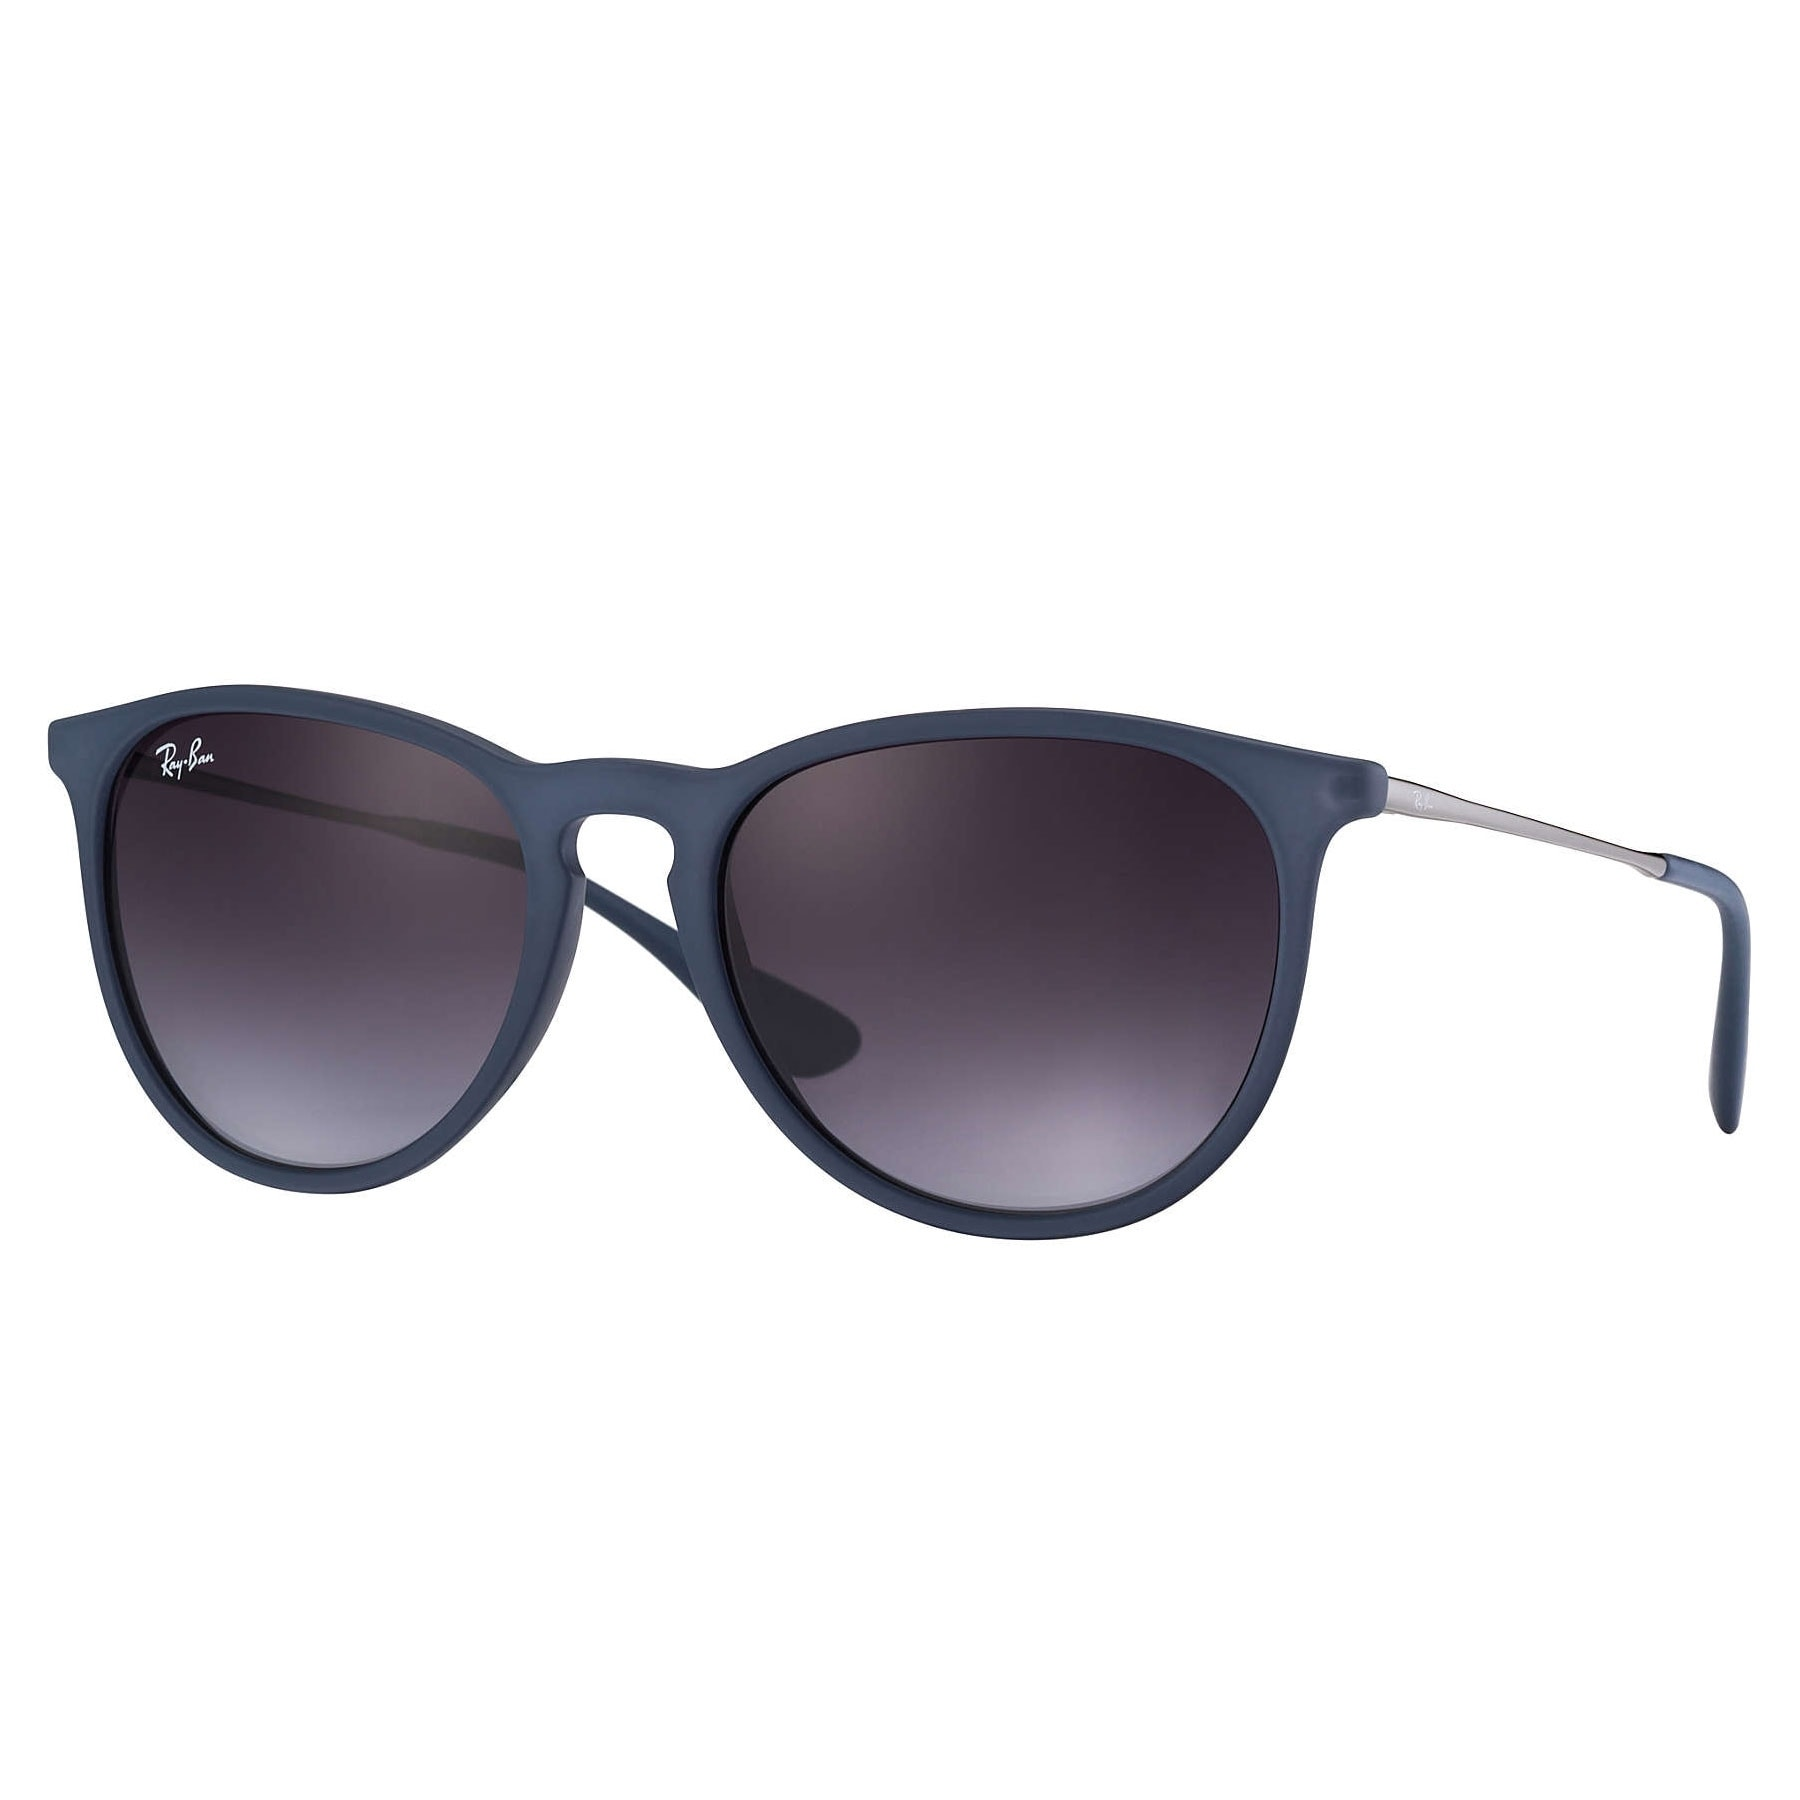 144dea964c0 Blue Sunglasses